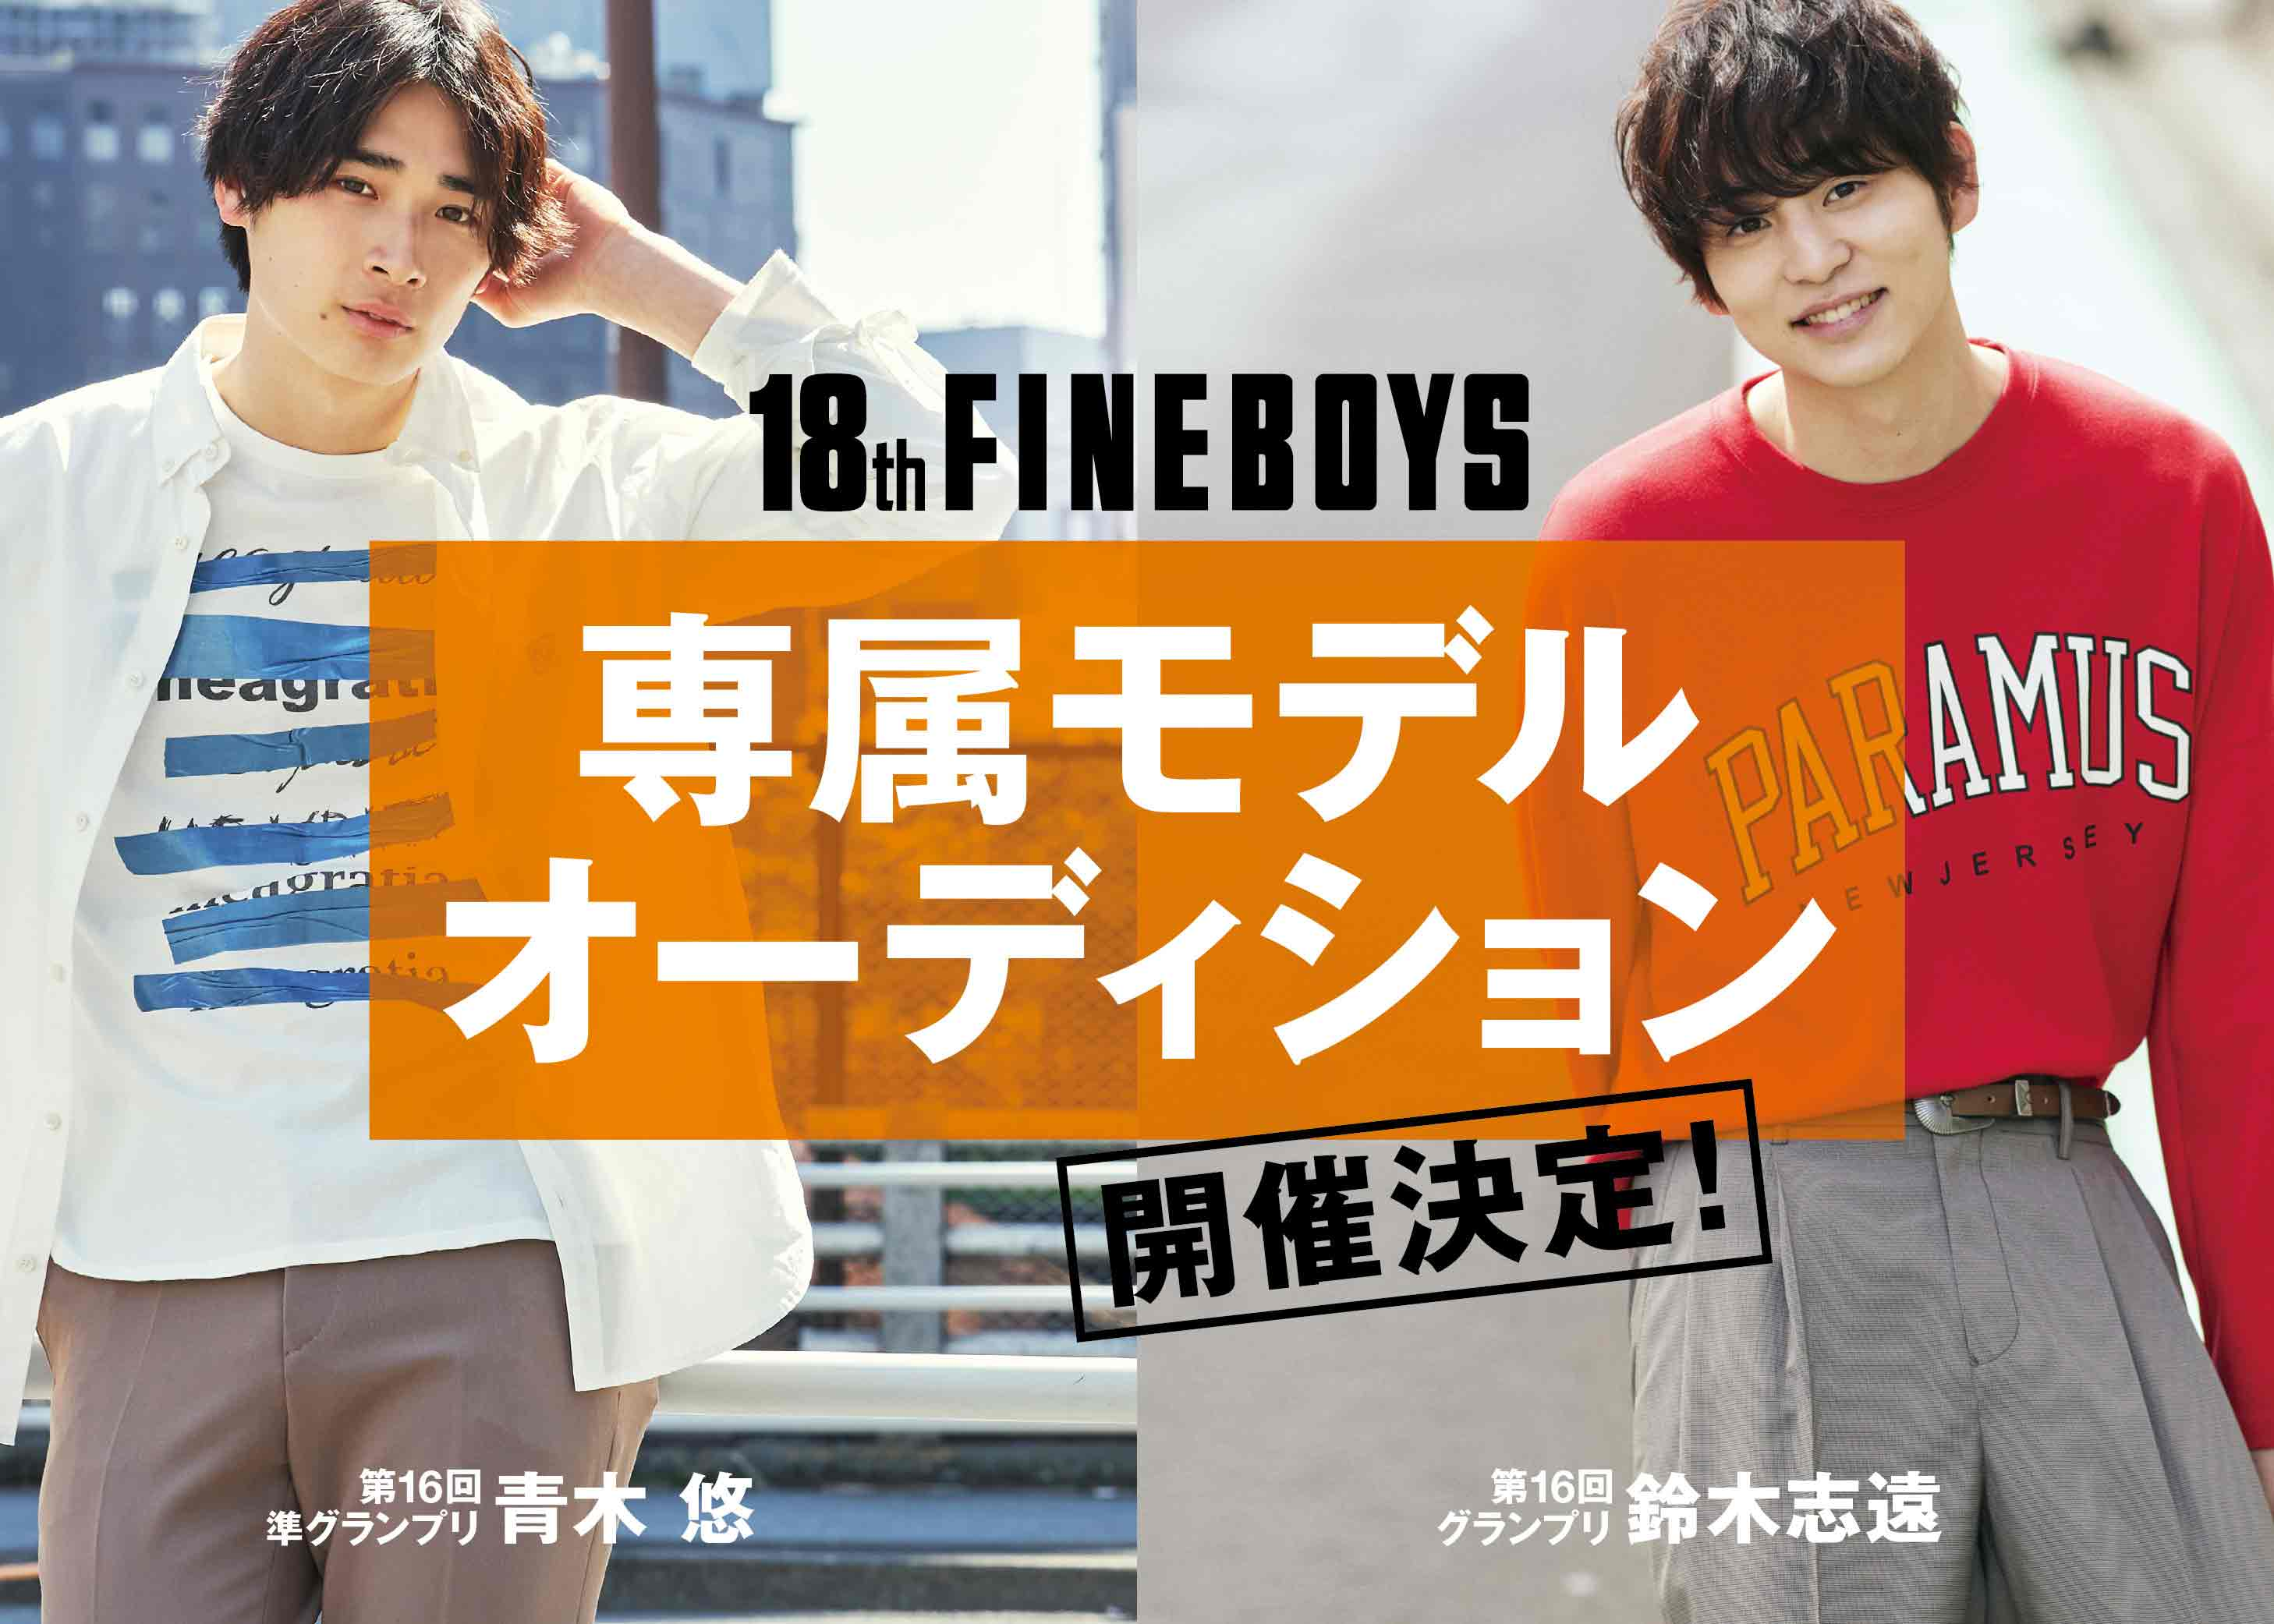 https://fineboys-online.jp/thegear/content/theme/img/org/article/3336/main.jpg?t=1619154461